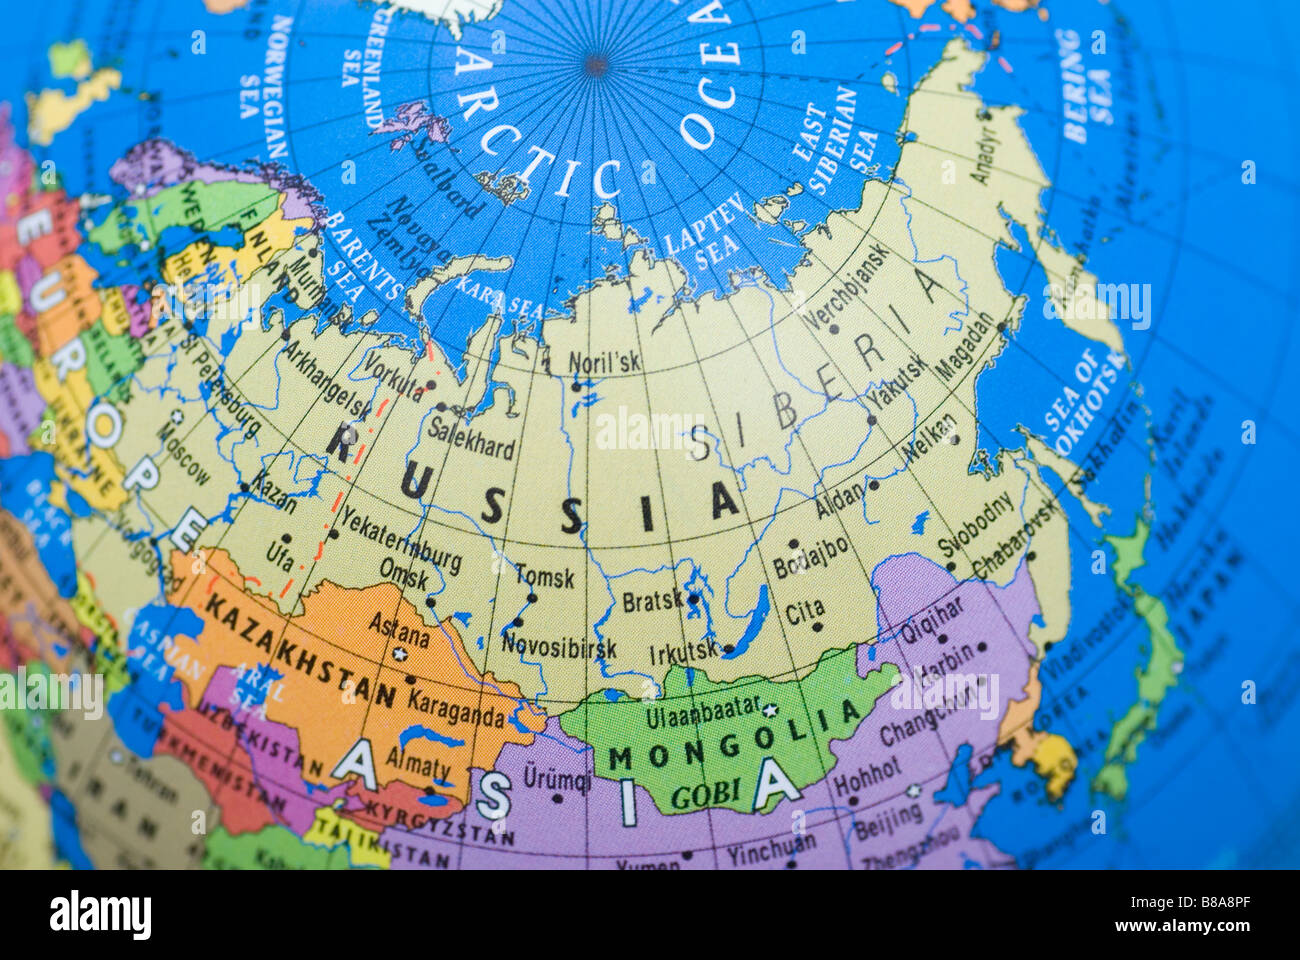 Russia map globe stock photos russia map globe stock images alamy map of russia on a globe stock image gumiabroncs Images